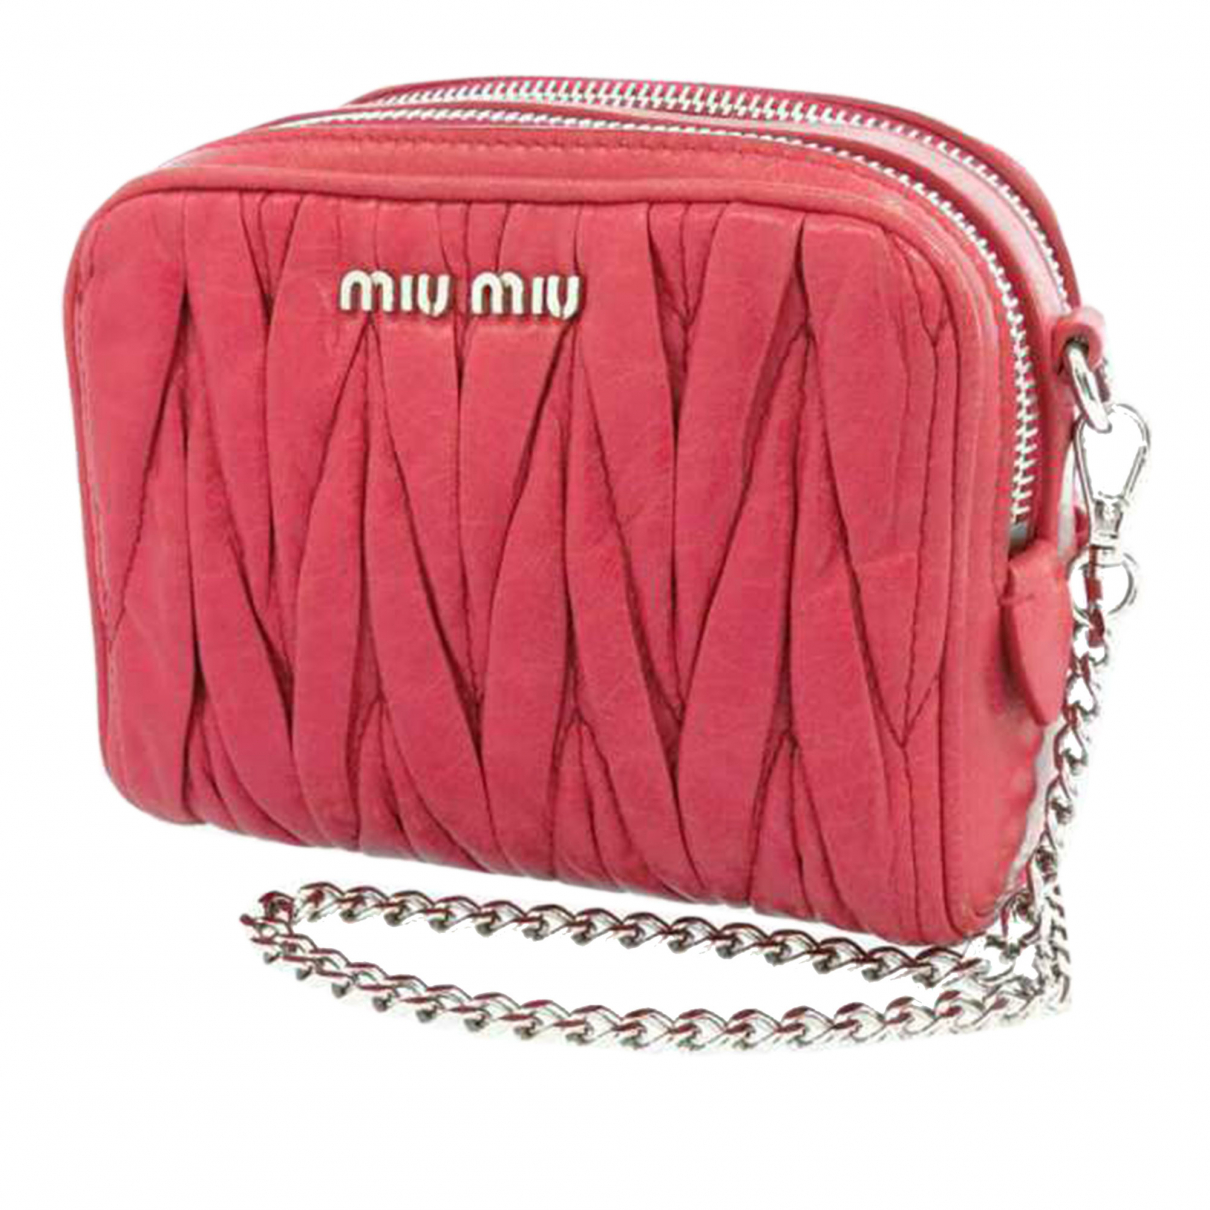 Miu Miu \N Pink Leather handbag for Women \N